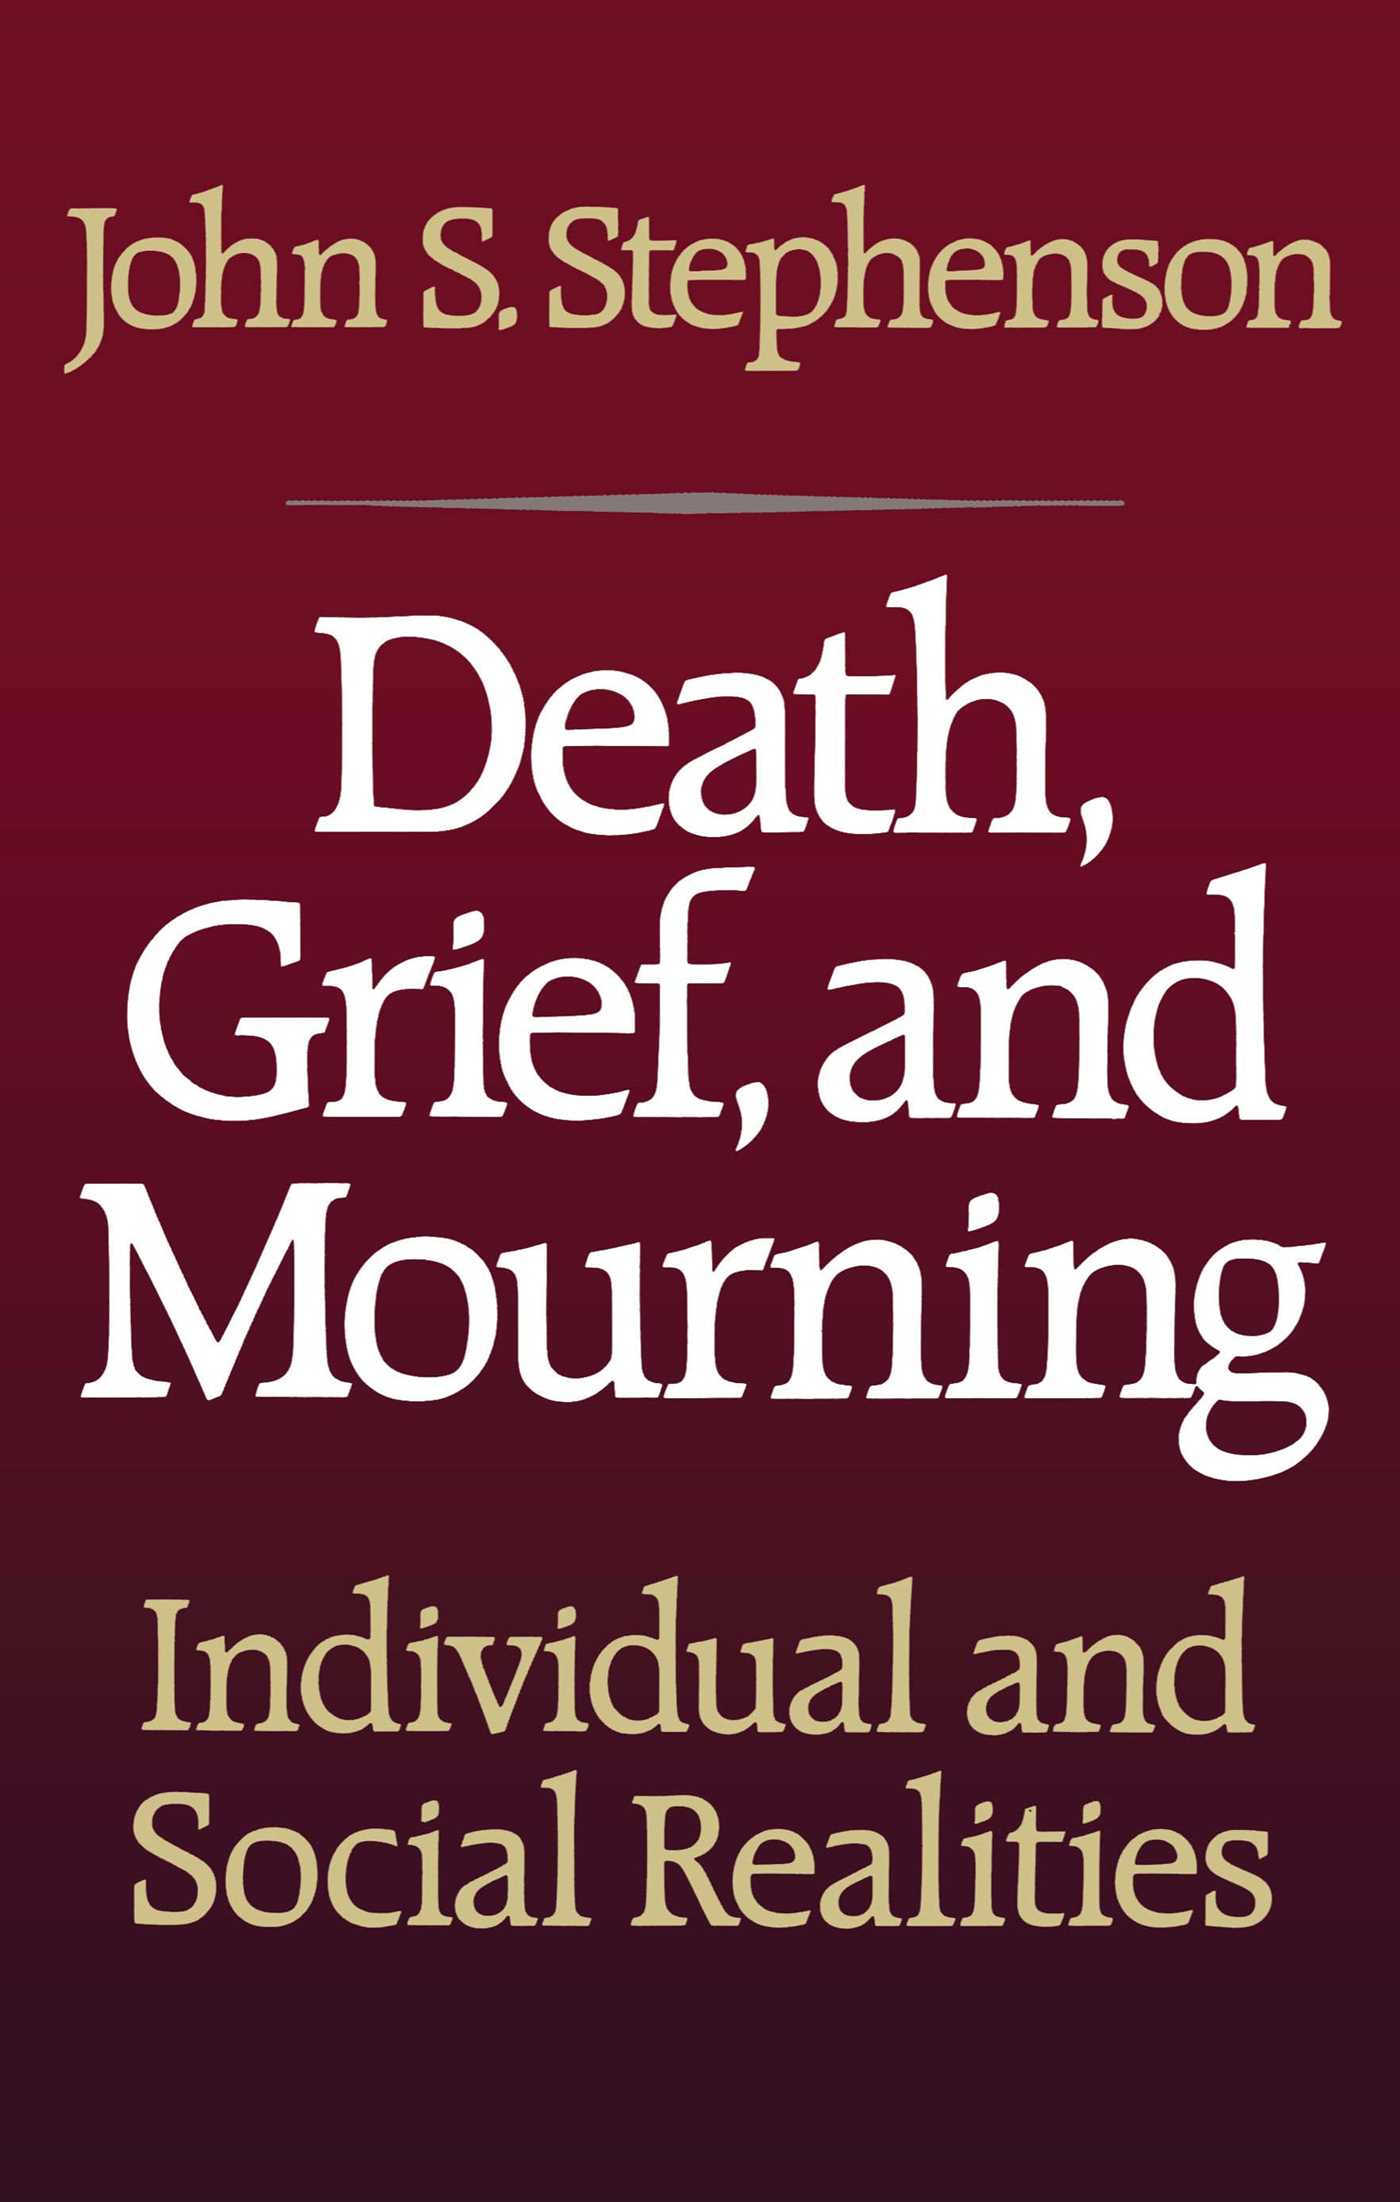 Death-grief-and-mourning-9781416573562_hr